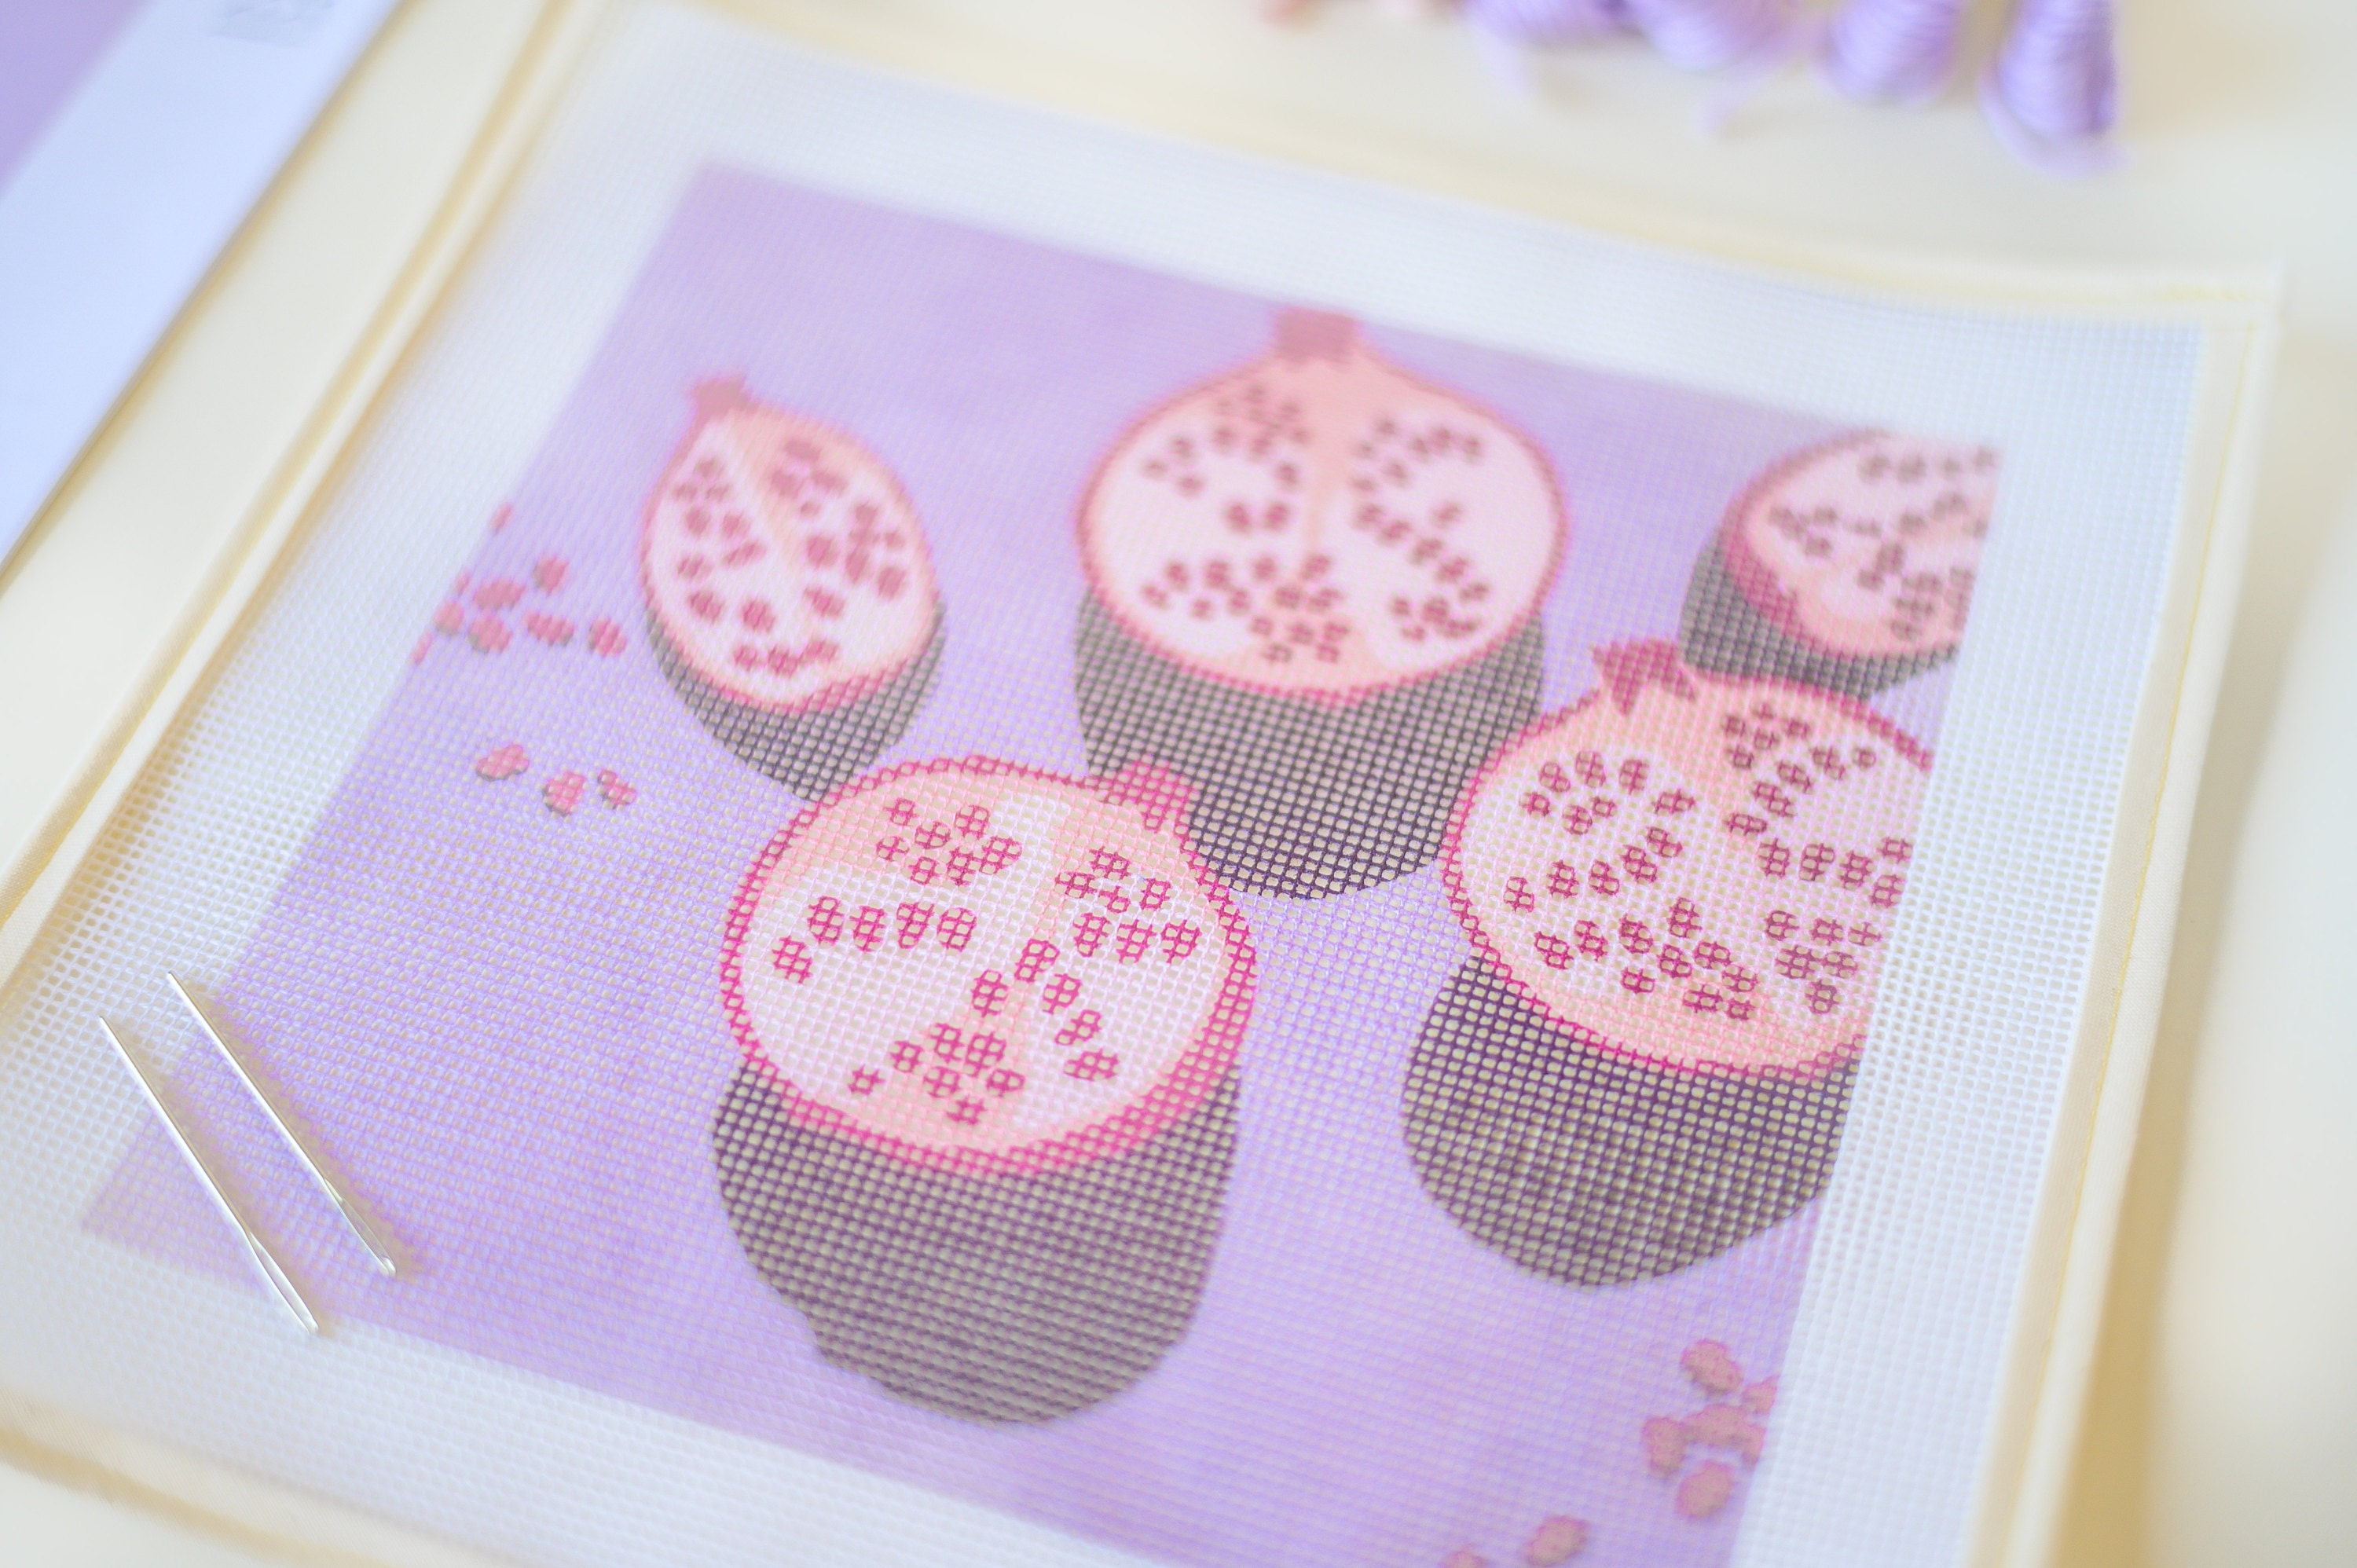 Lilac and pink pomegranate printed needlepoint canvas from Unwind Studio designed by Laura Croft